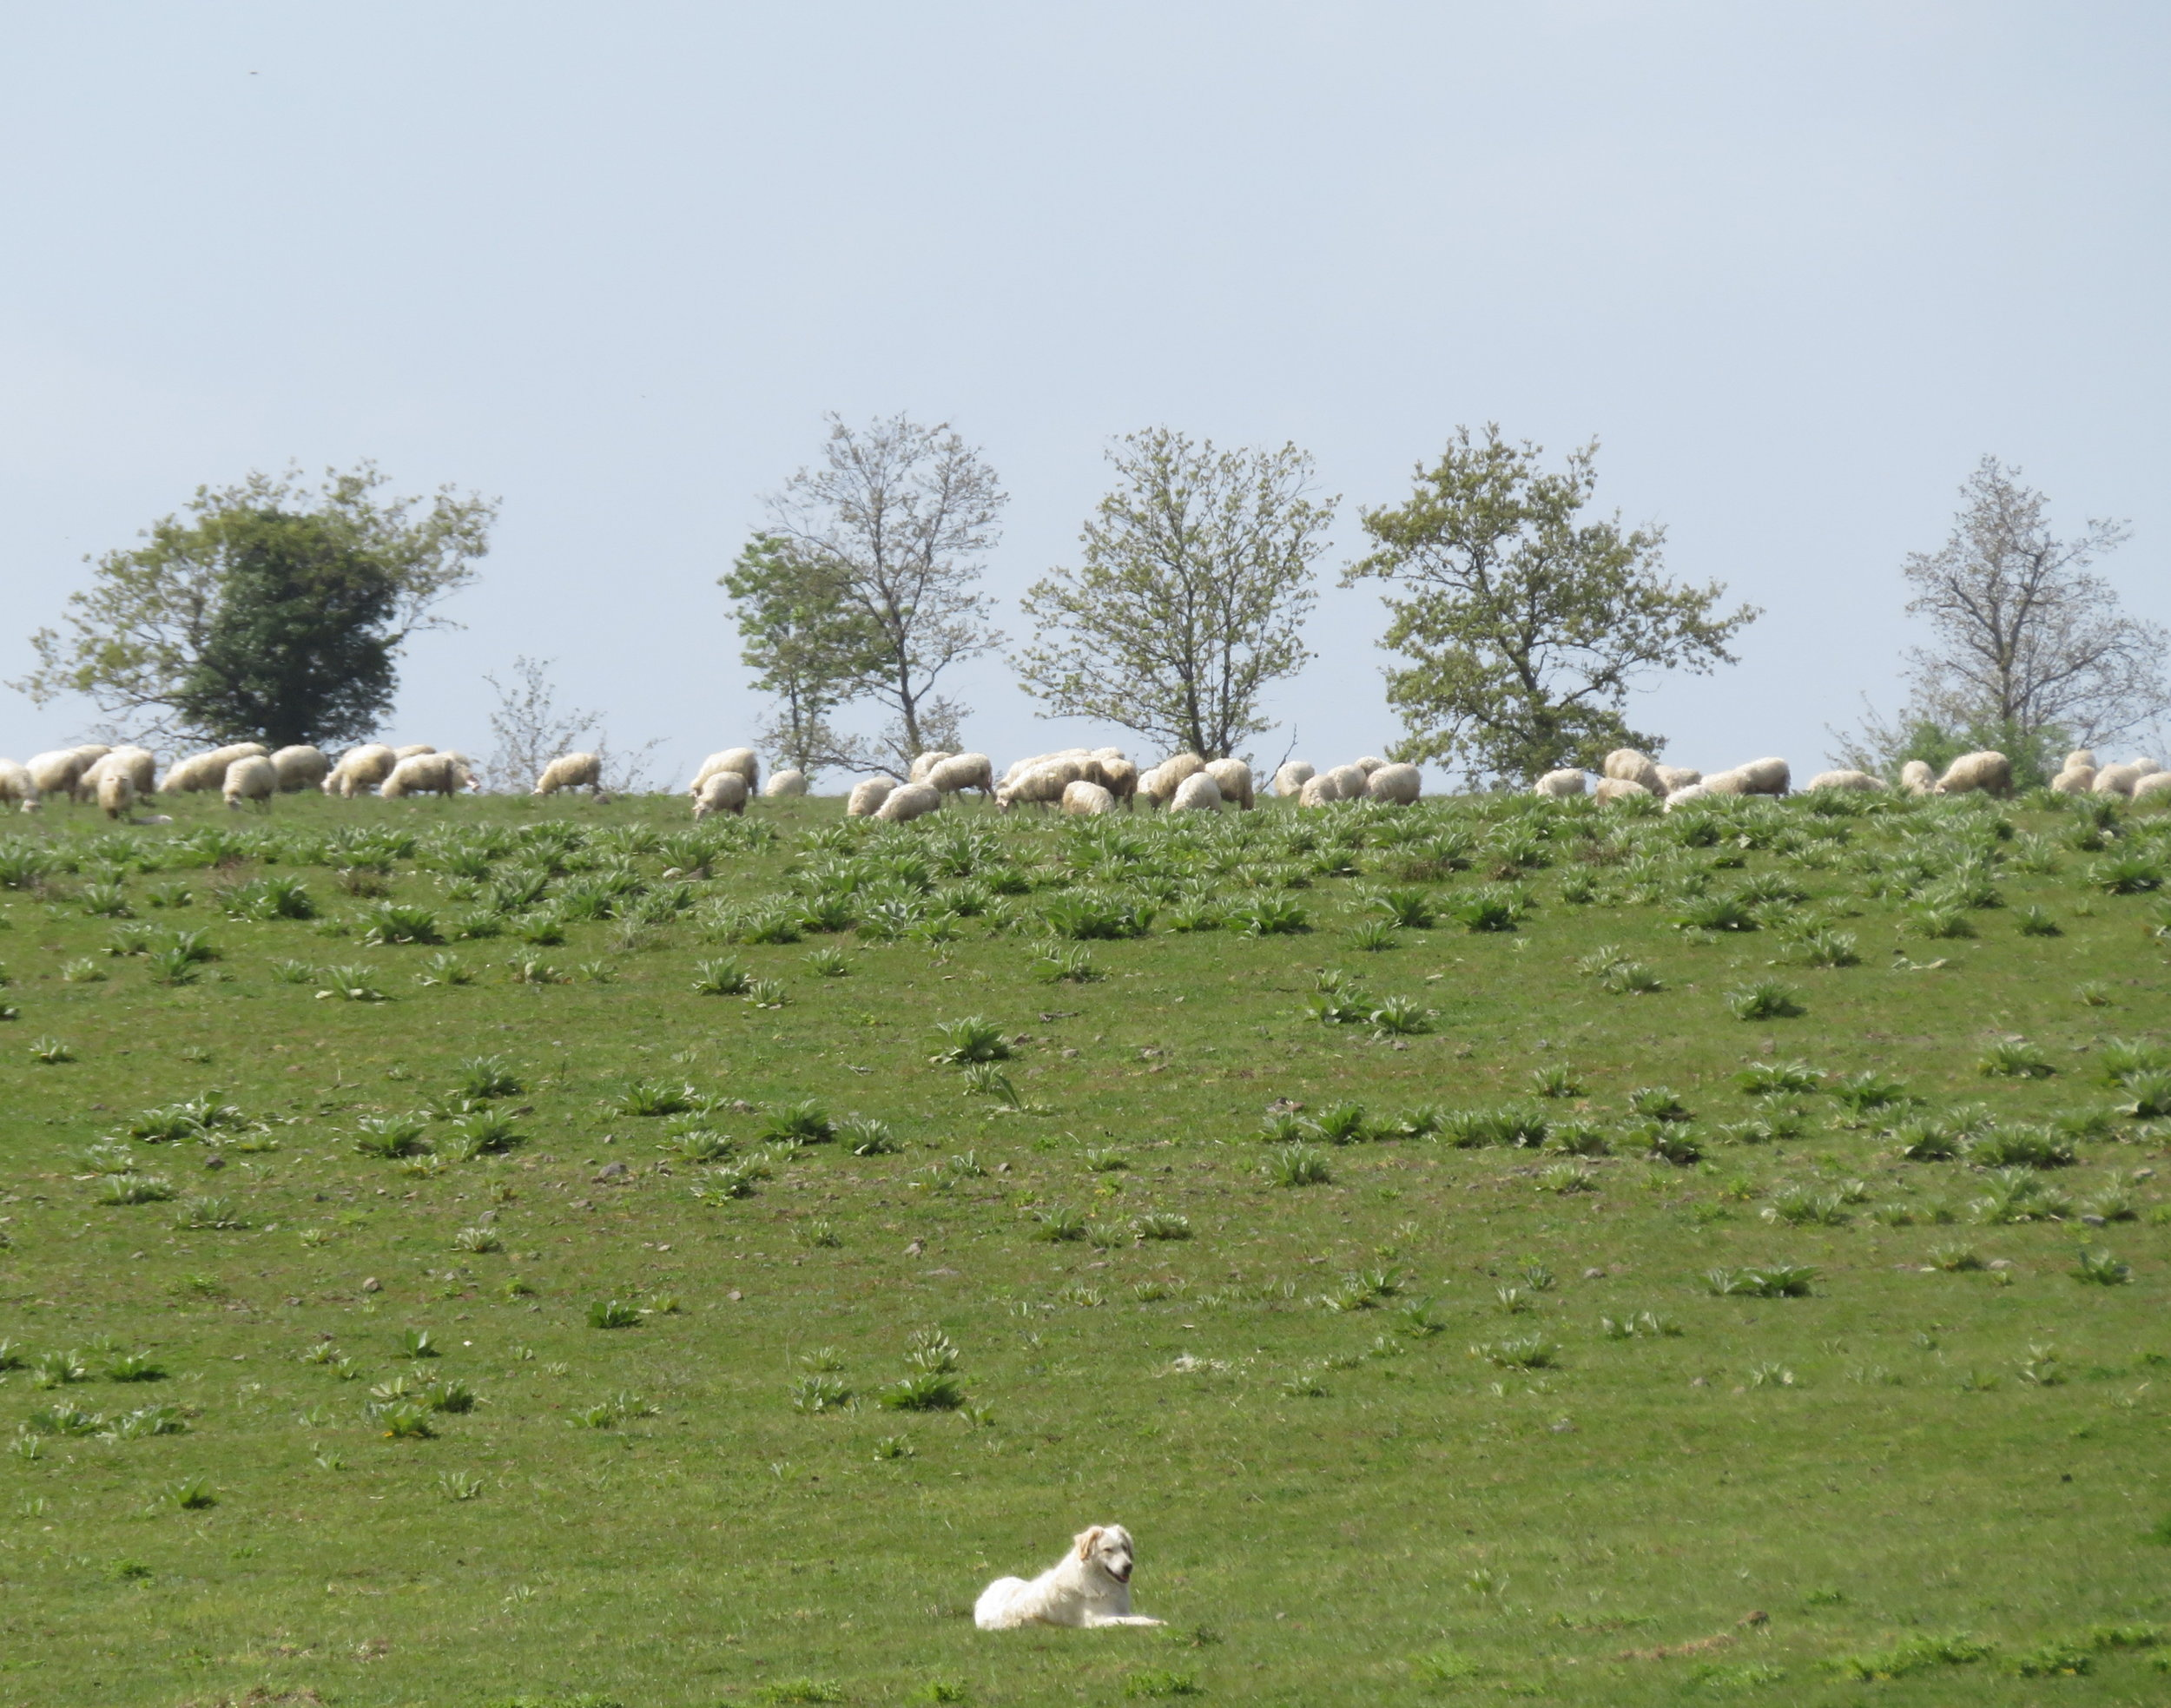 A herd of sheep stood out sharply in contrast to the bright green fields in which they were grazing, their guard dog taking the opportunity for a break from his duties.